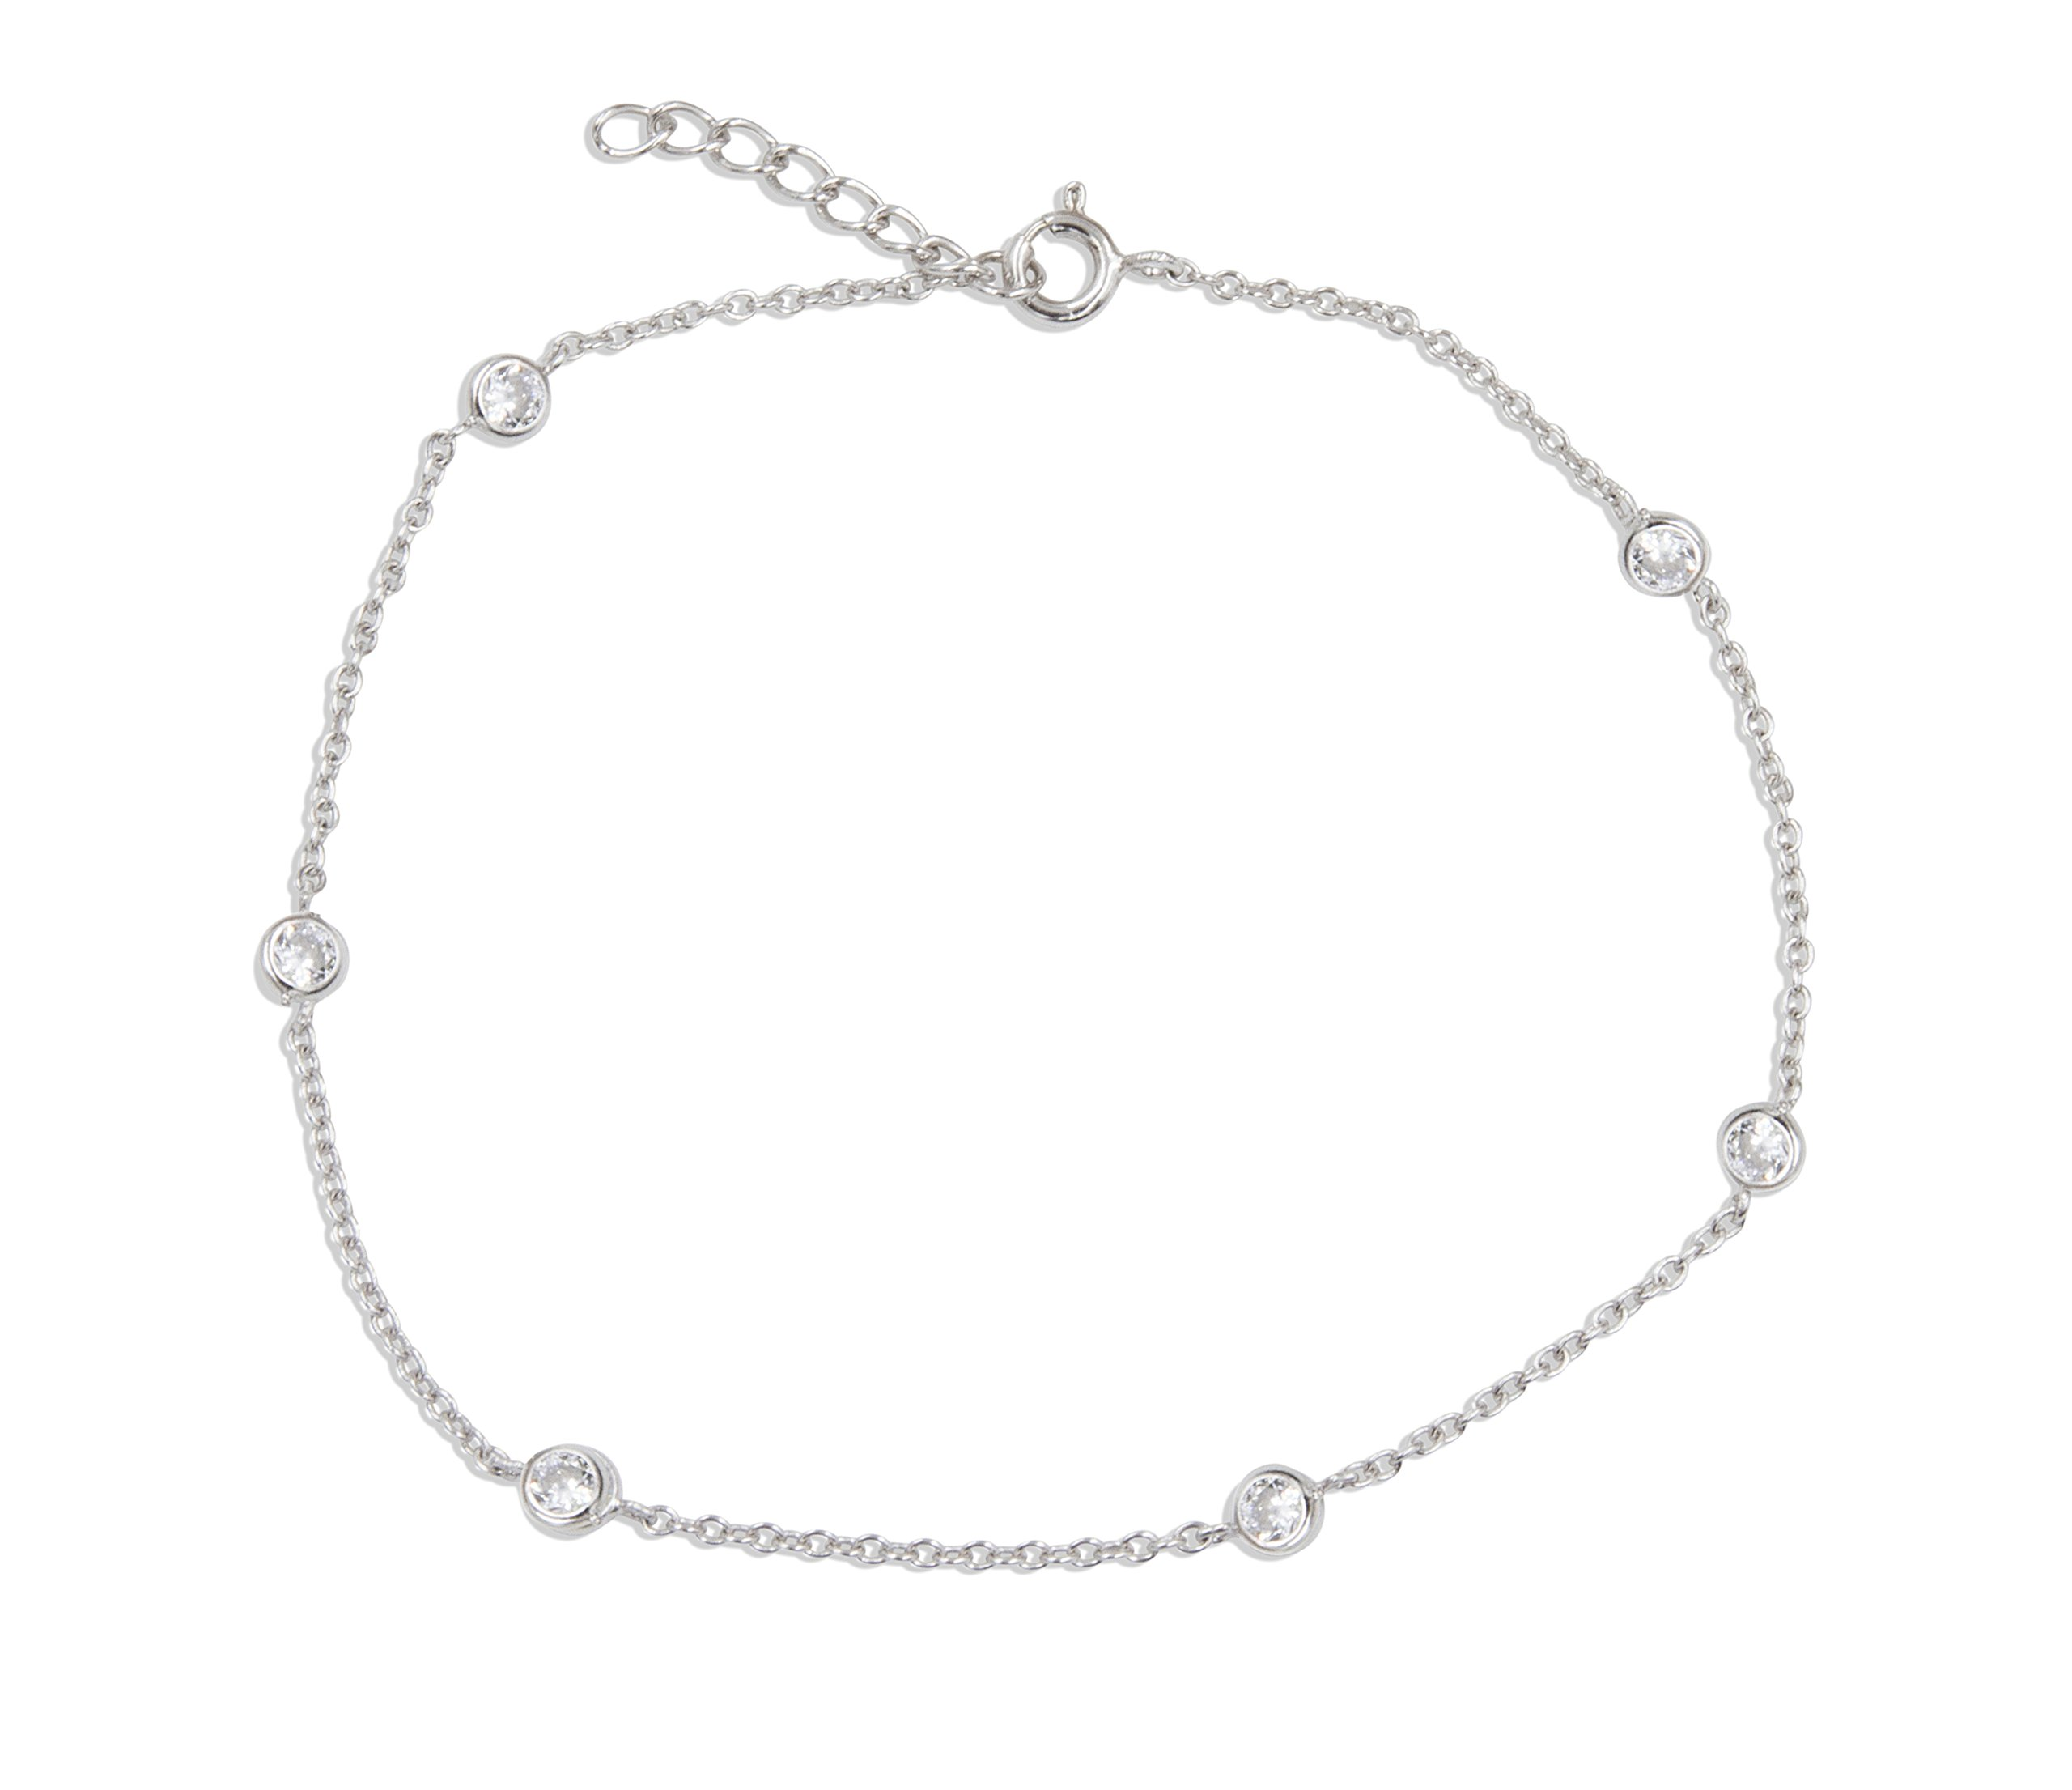 SilverLuxe Women's Sterling Silver Cubic Zirconia Station Anklet Bracelet 9'' with a 1'' extender